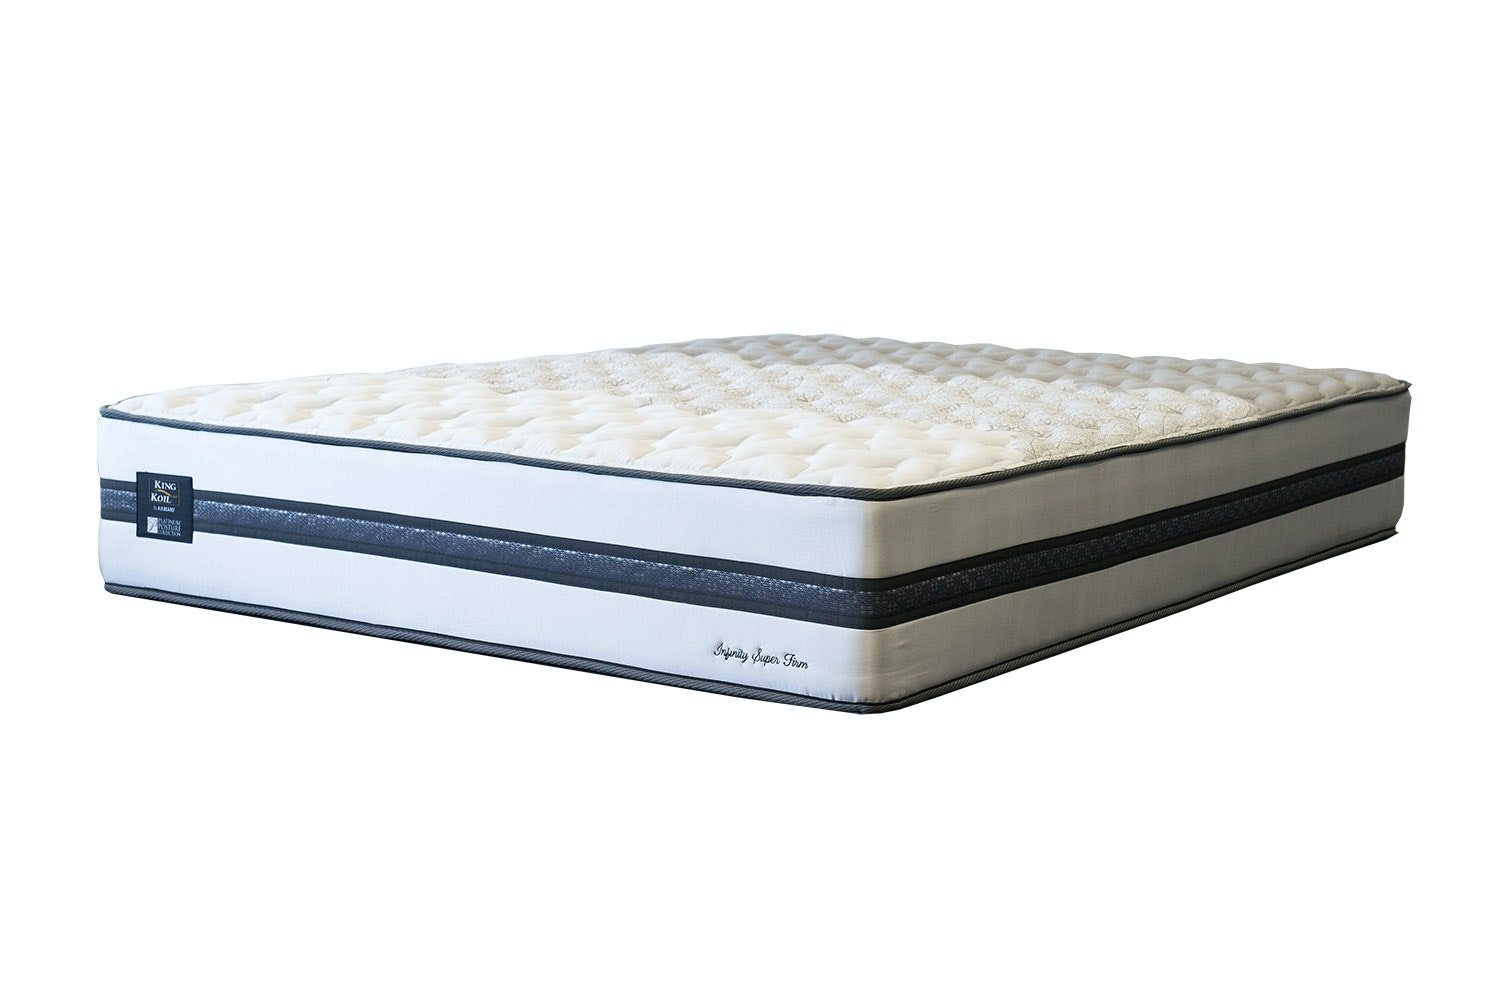 Infinity Super Firm Single Mattress by King Koil